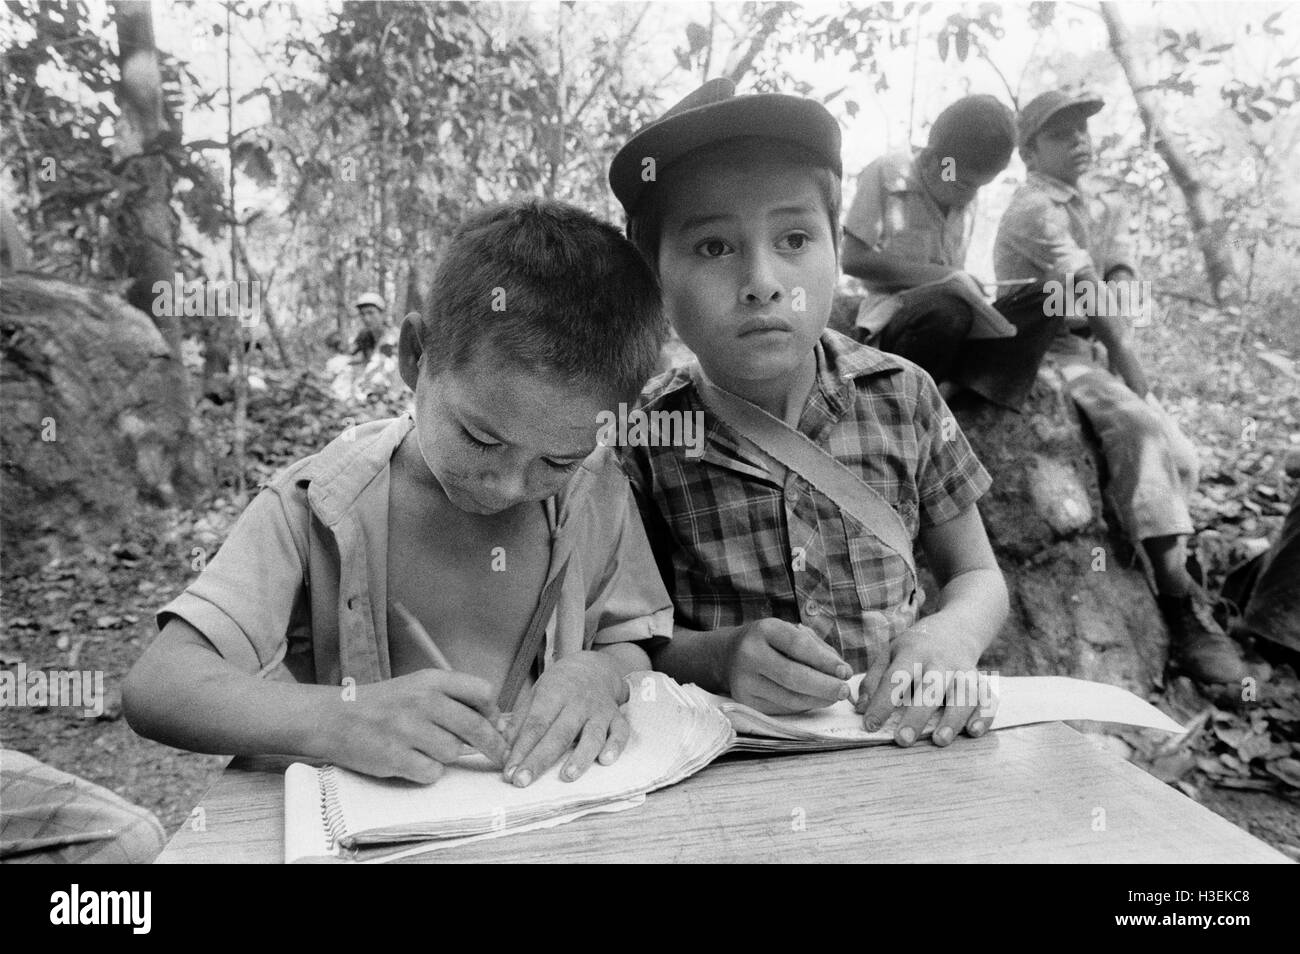 CHALATENANGO EL SALVADOR, FEB 1984: - Within the FPL Guerrilla's Zones of Control - a mixed children and adult - Stock Image